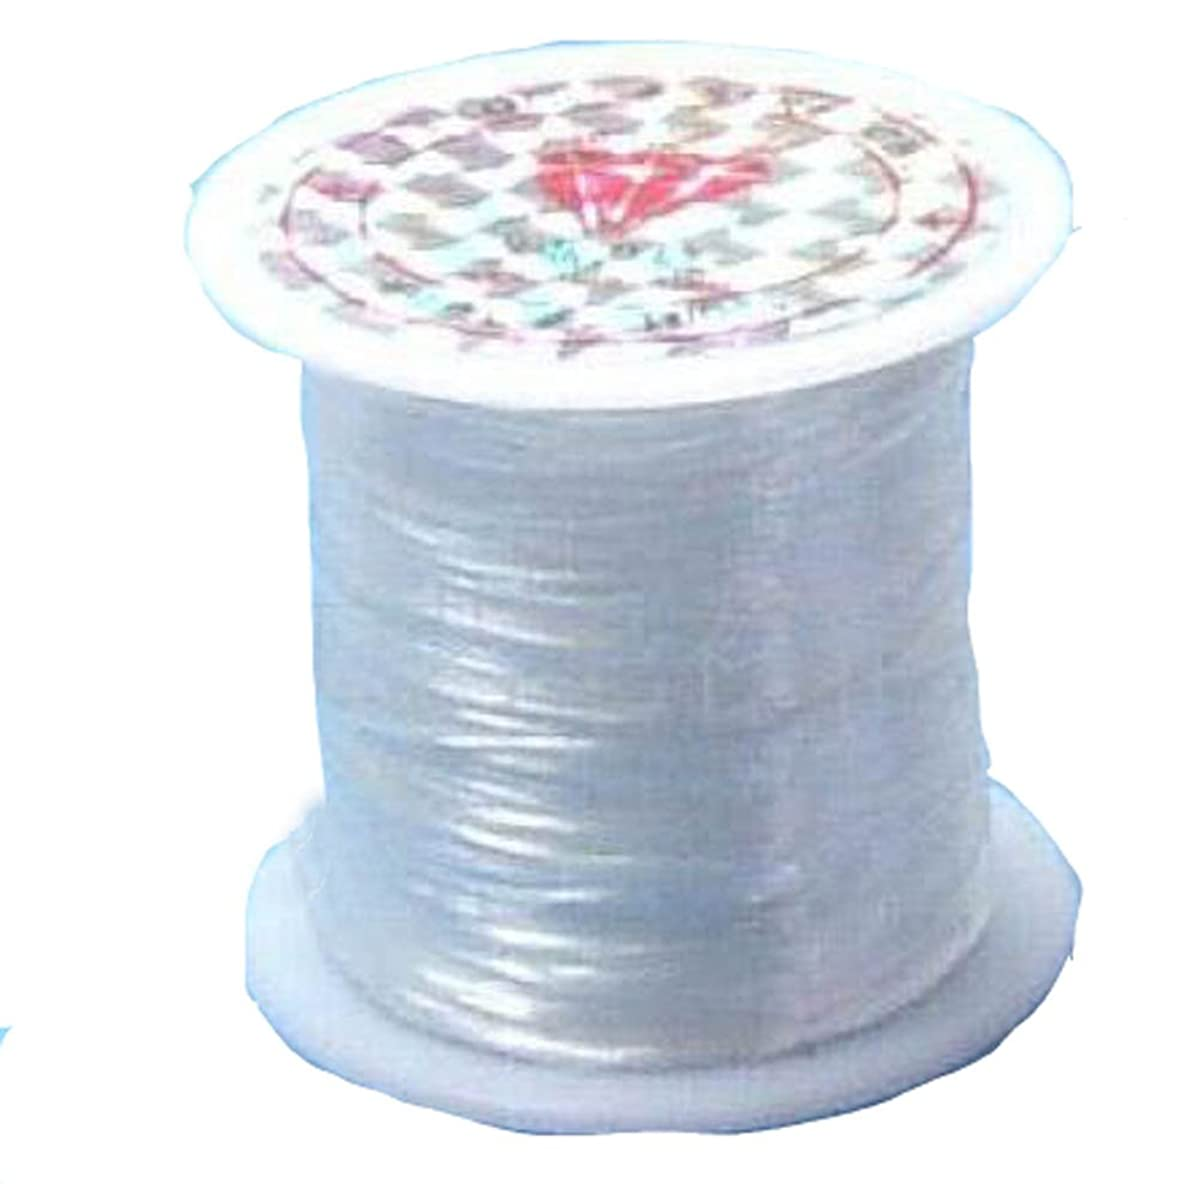 YOYOSTORE 1x 40m Roll 0.4mm Cord Thread Beading String Fishing Strong Wire Jewelry Make Tool